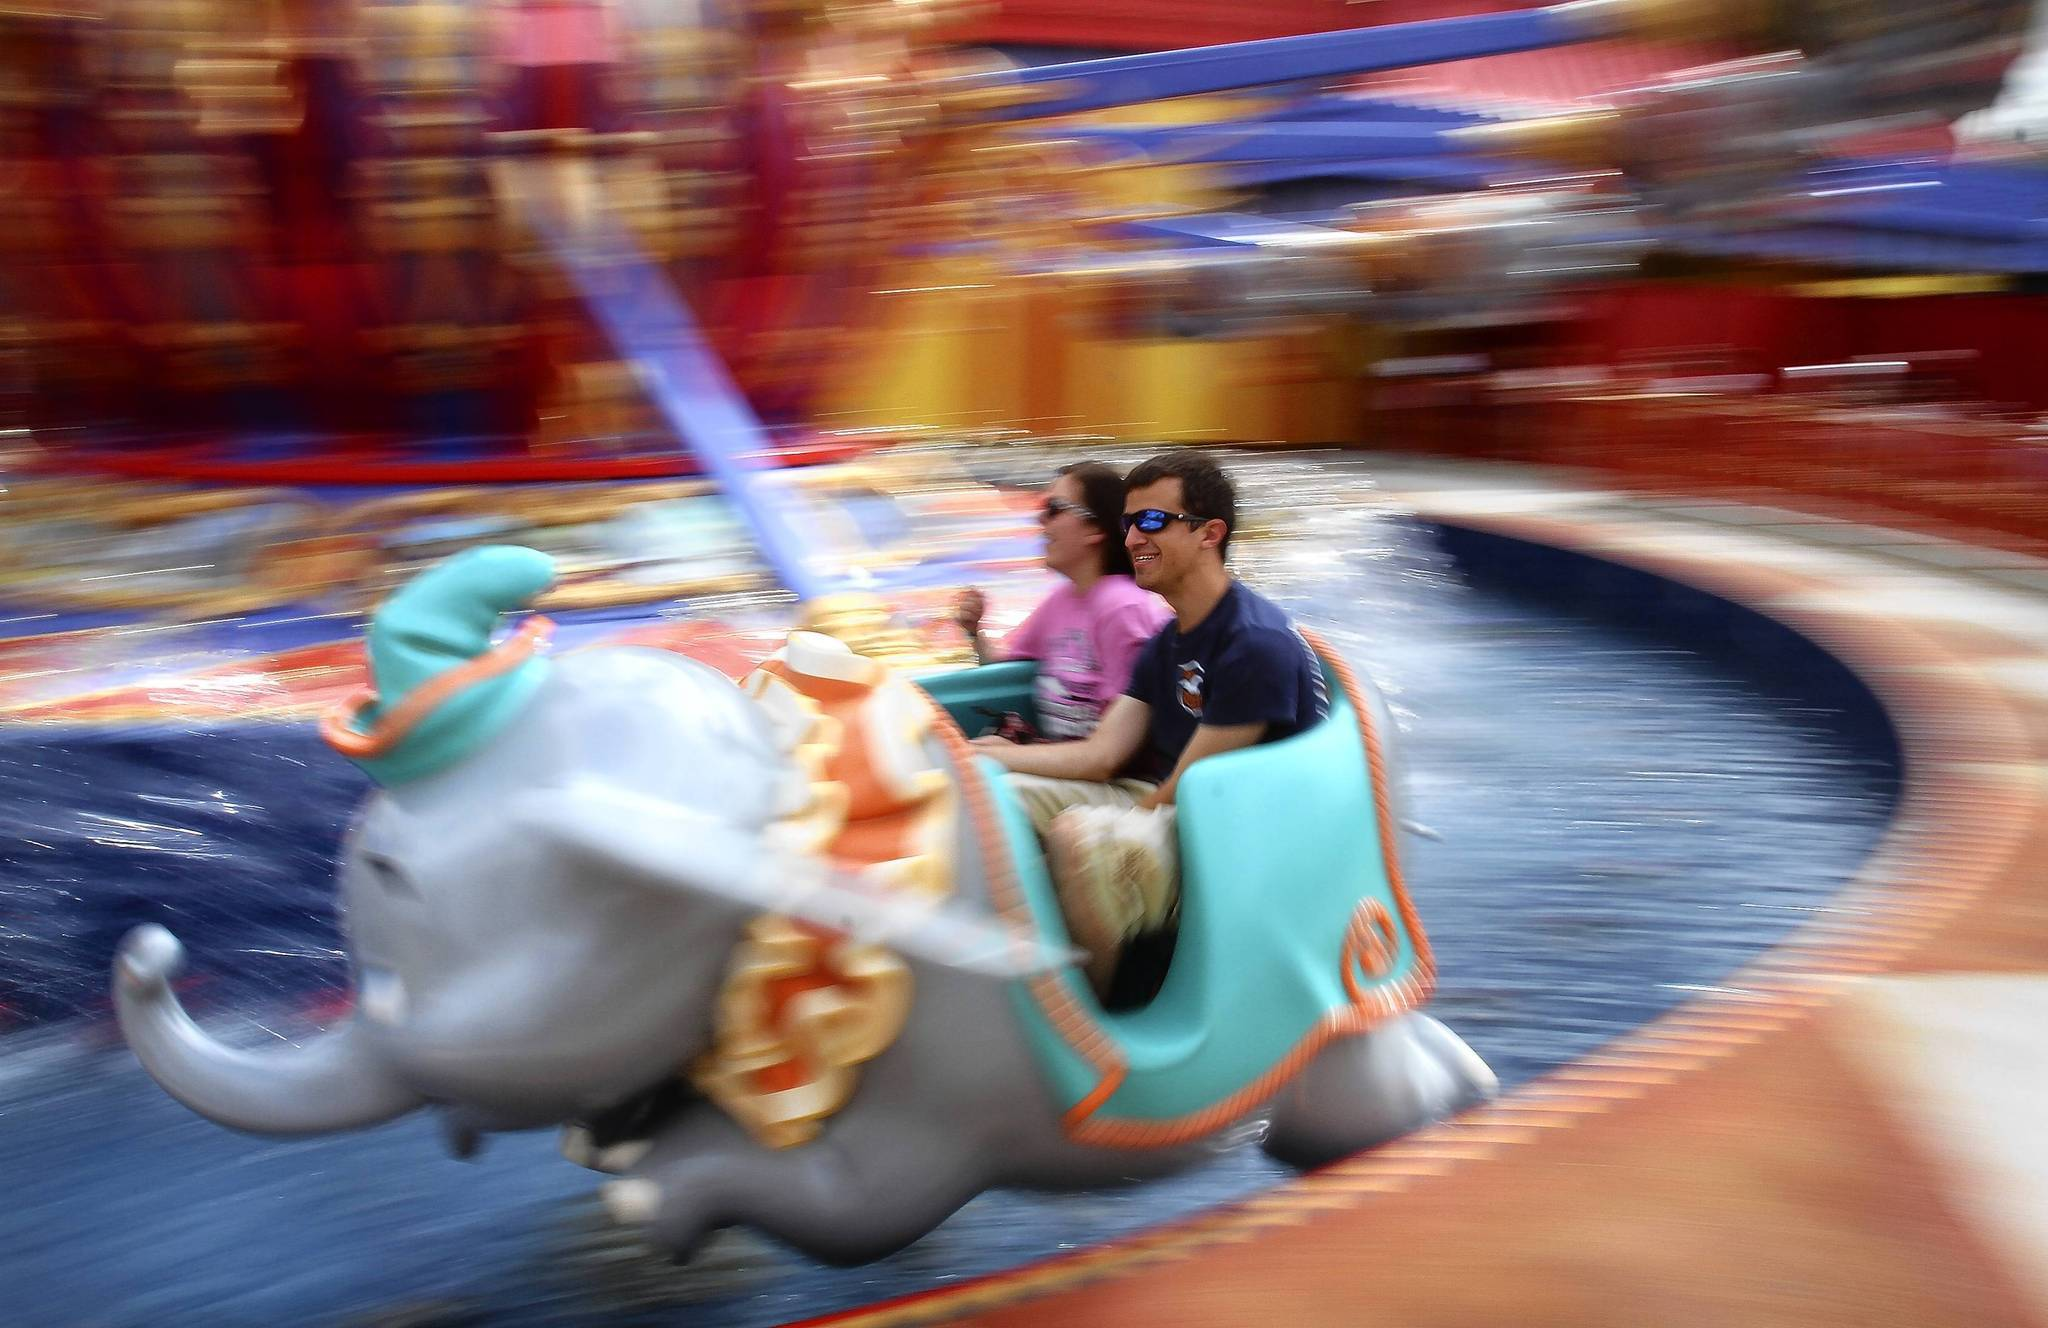 Guests ride Dumbo the Flying Elephant during the soft opening of the first phase of the Fantasyland expansion at Disney's Magic Kingdom.